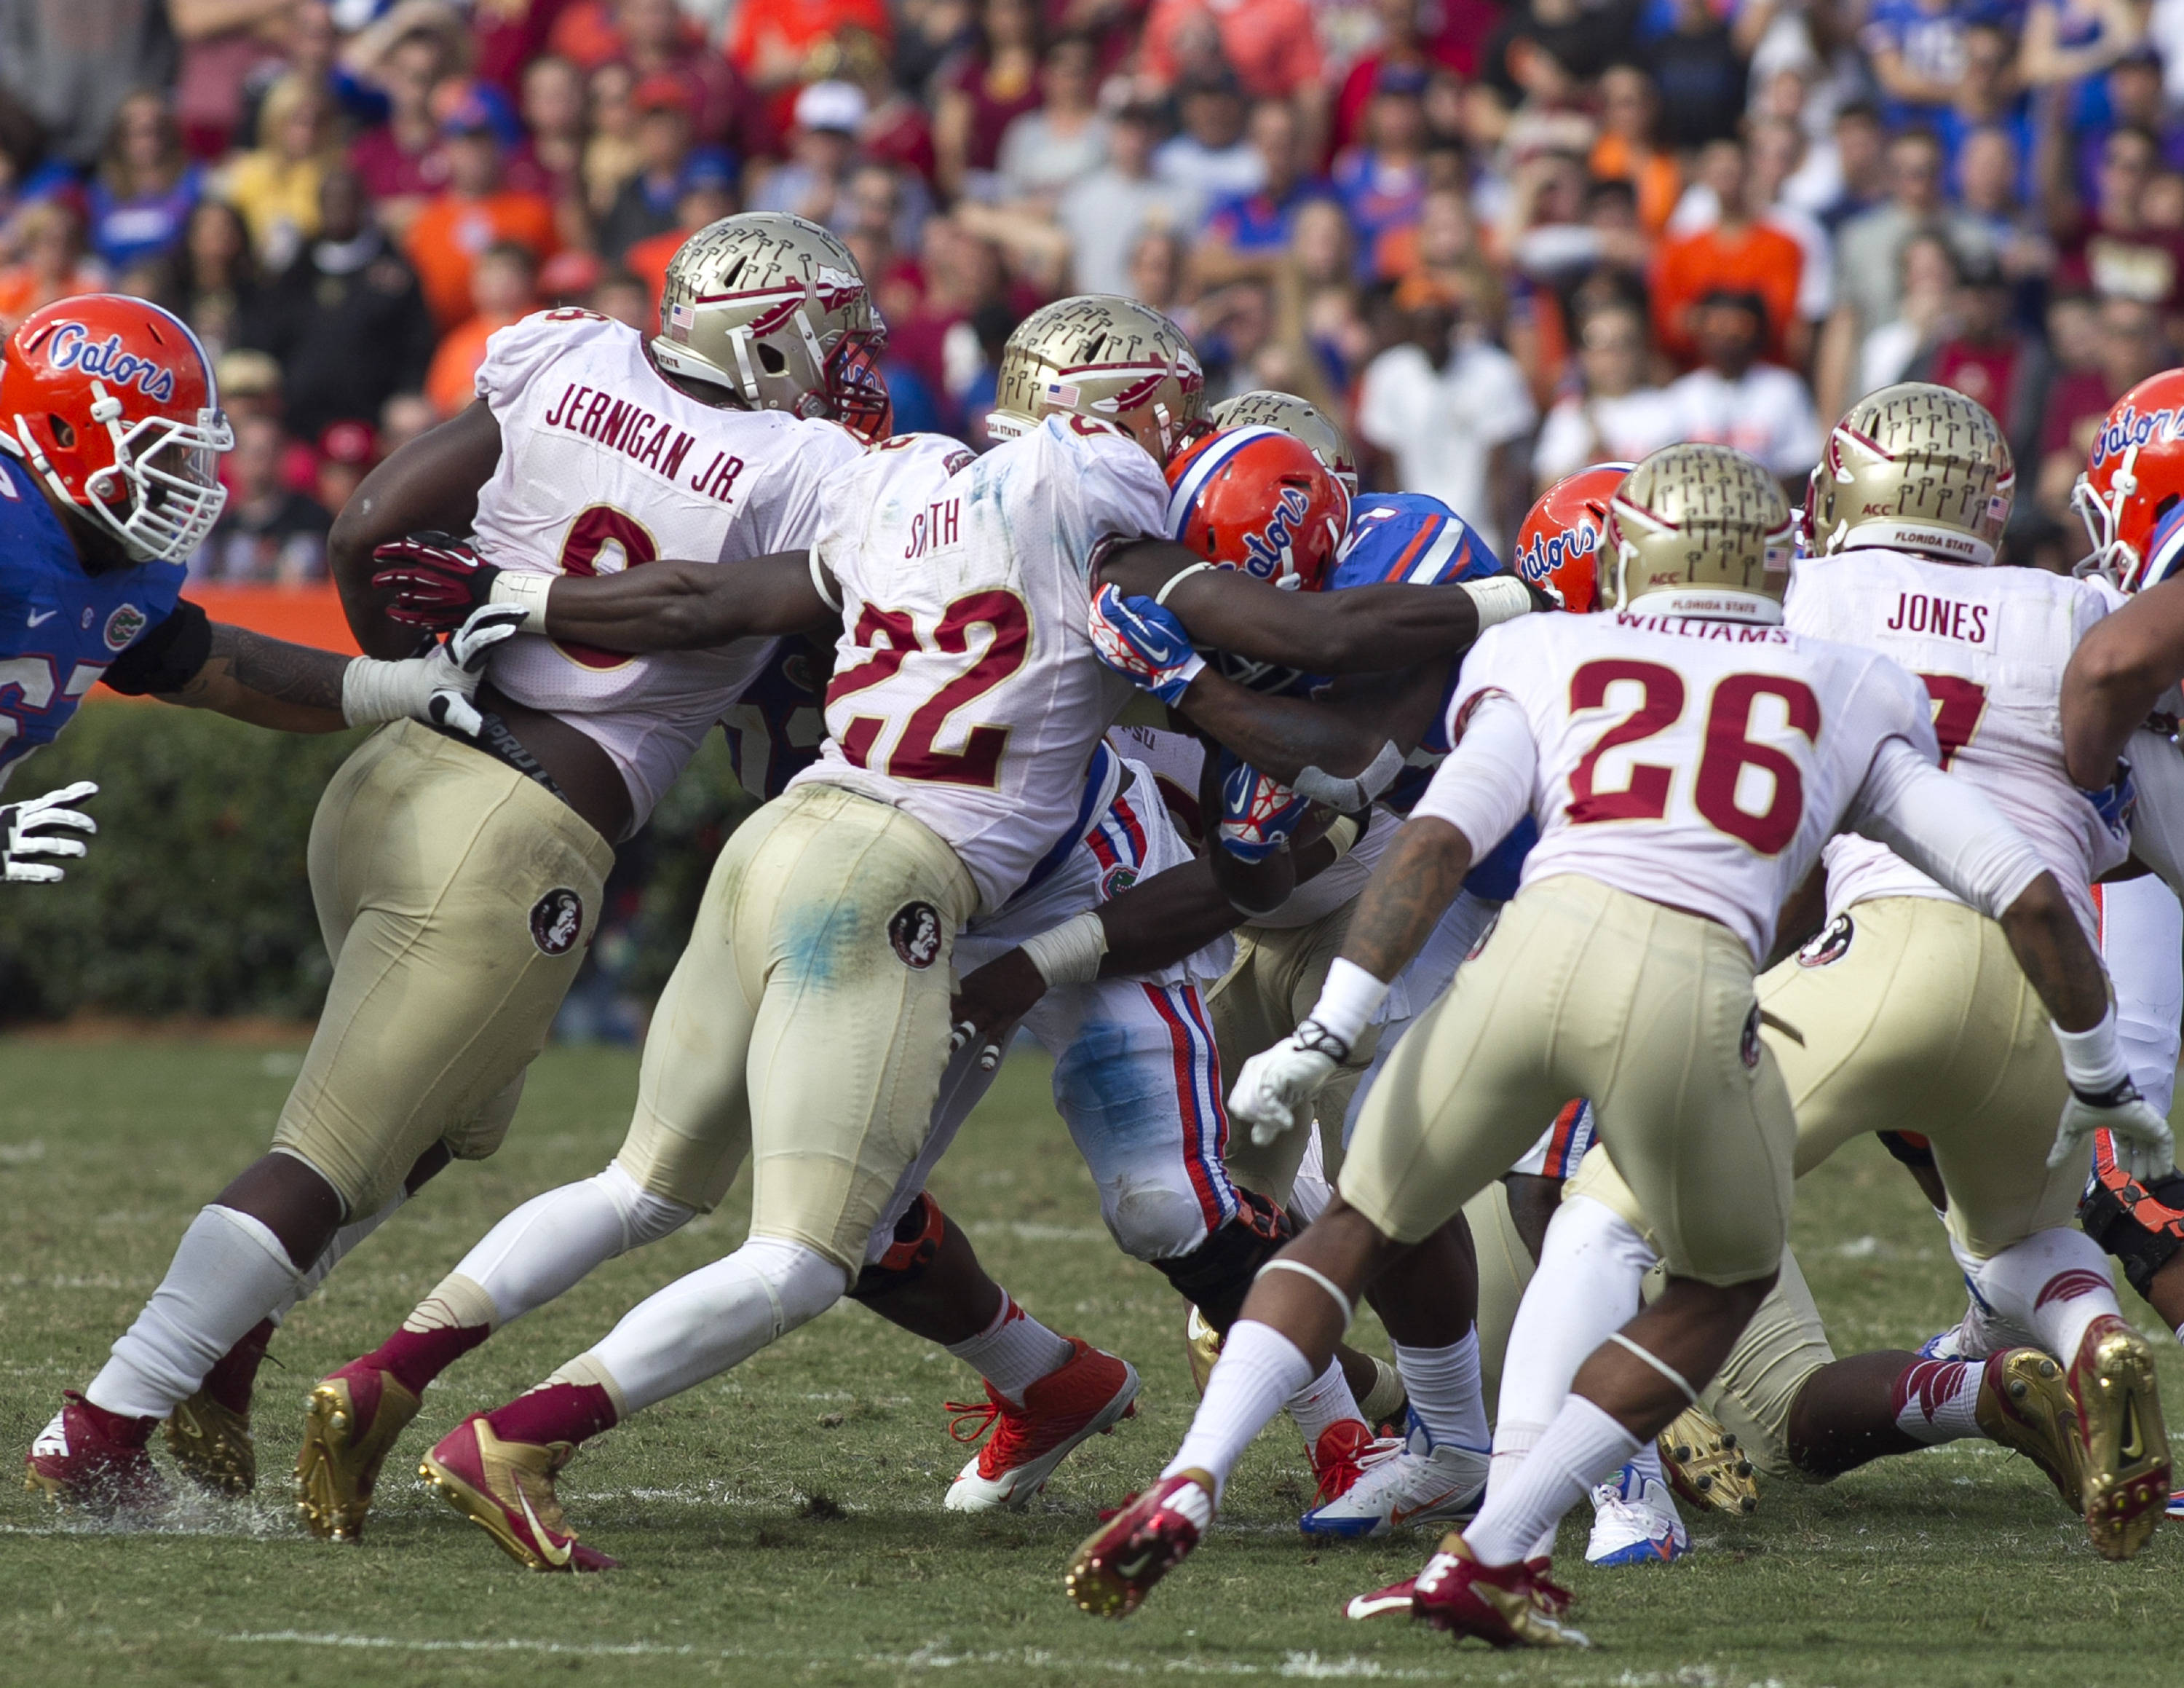 Swarming defensive tackles, FSU vs Florida, 11-30-13,  (Photo by Steve Musco)